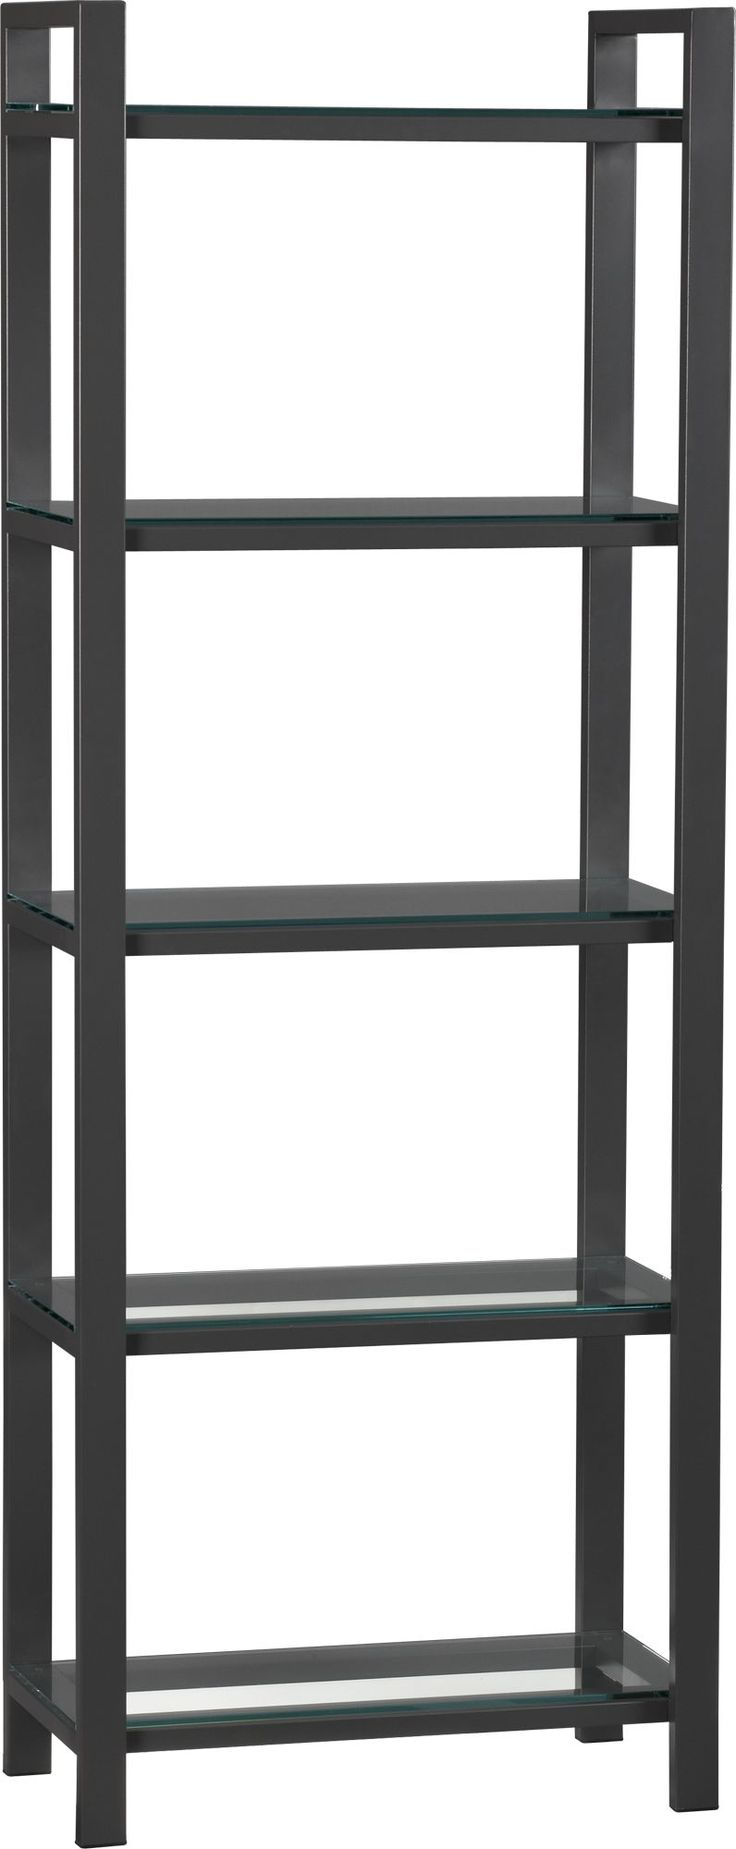 Pilsen Graphite Tall Bookcase  | Crate and Barrel